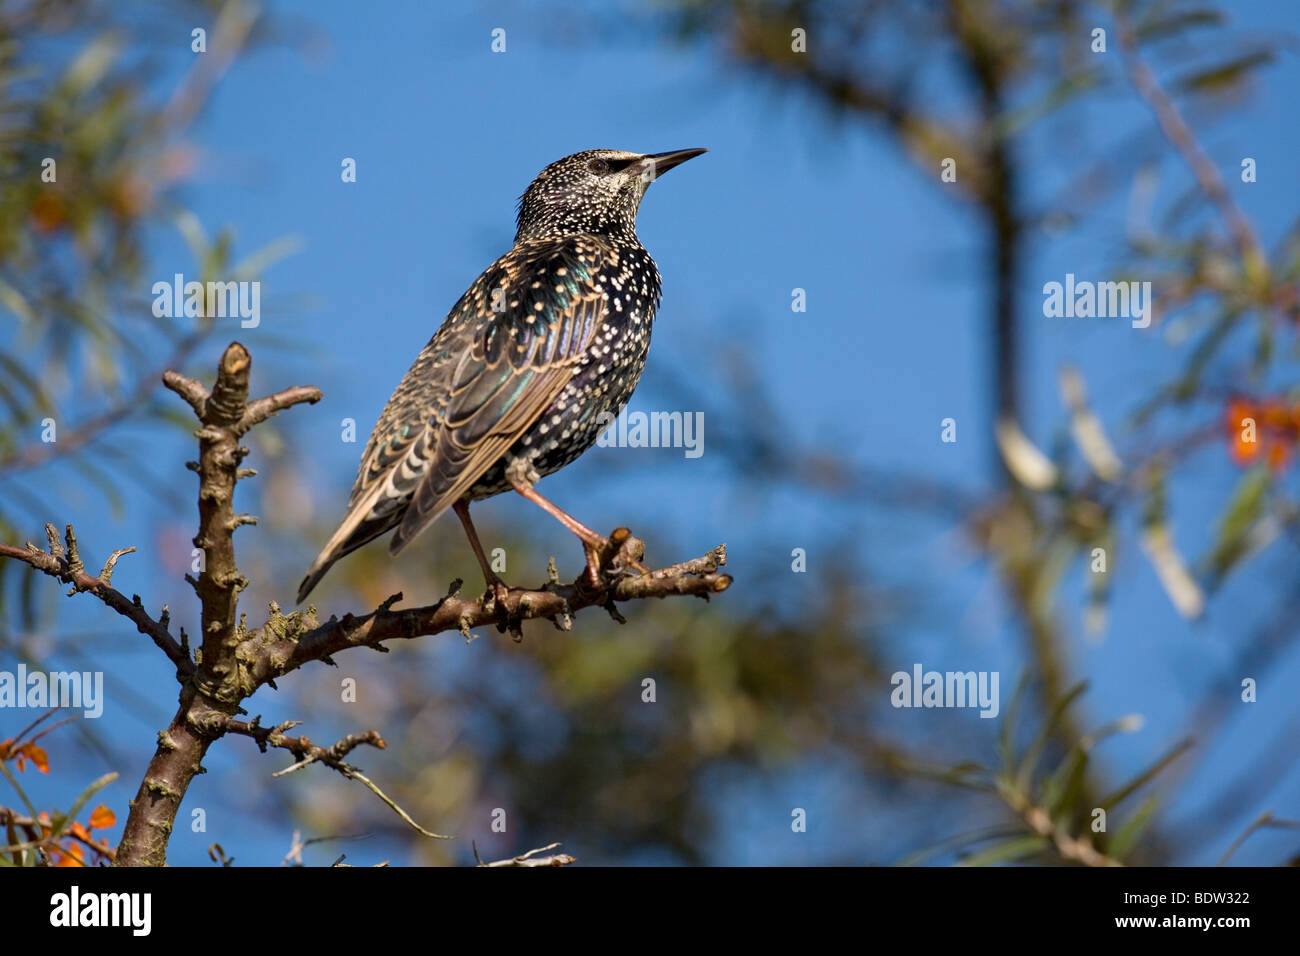 Starling & Sea Buckthorn / Sturnus vulgaris & Hippophae rhamnoides Stock Photo